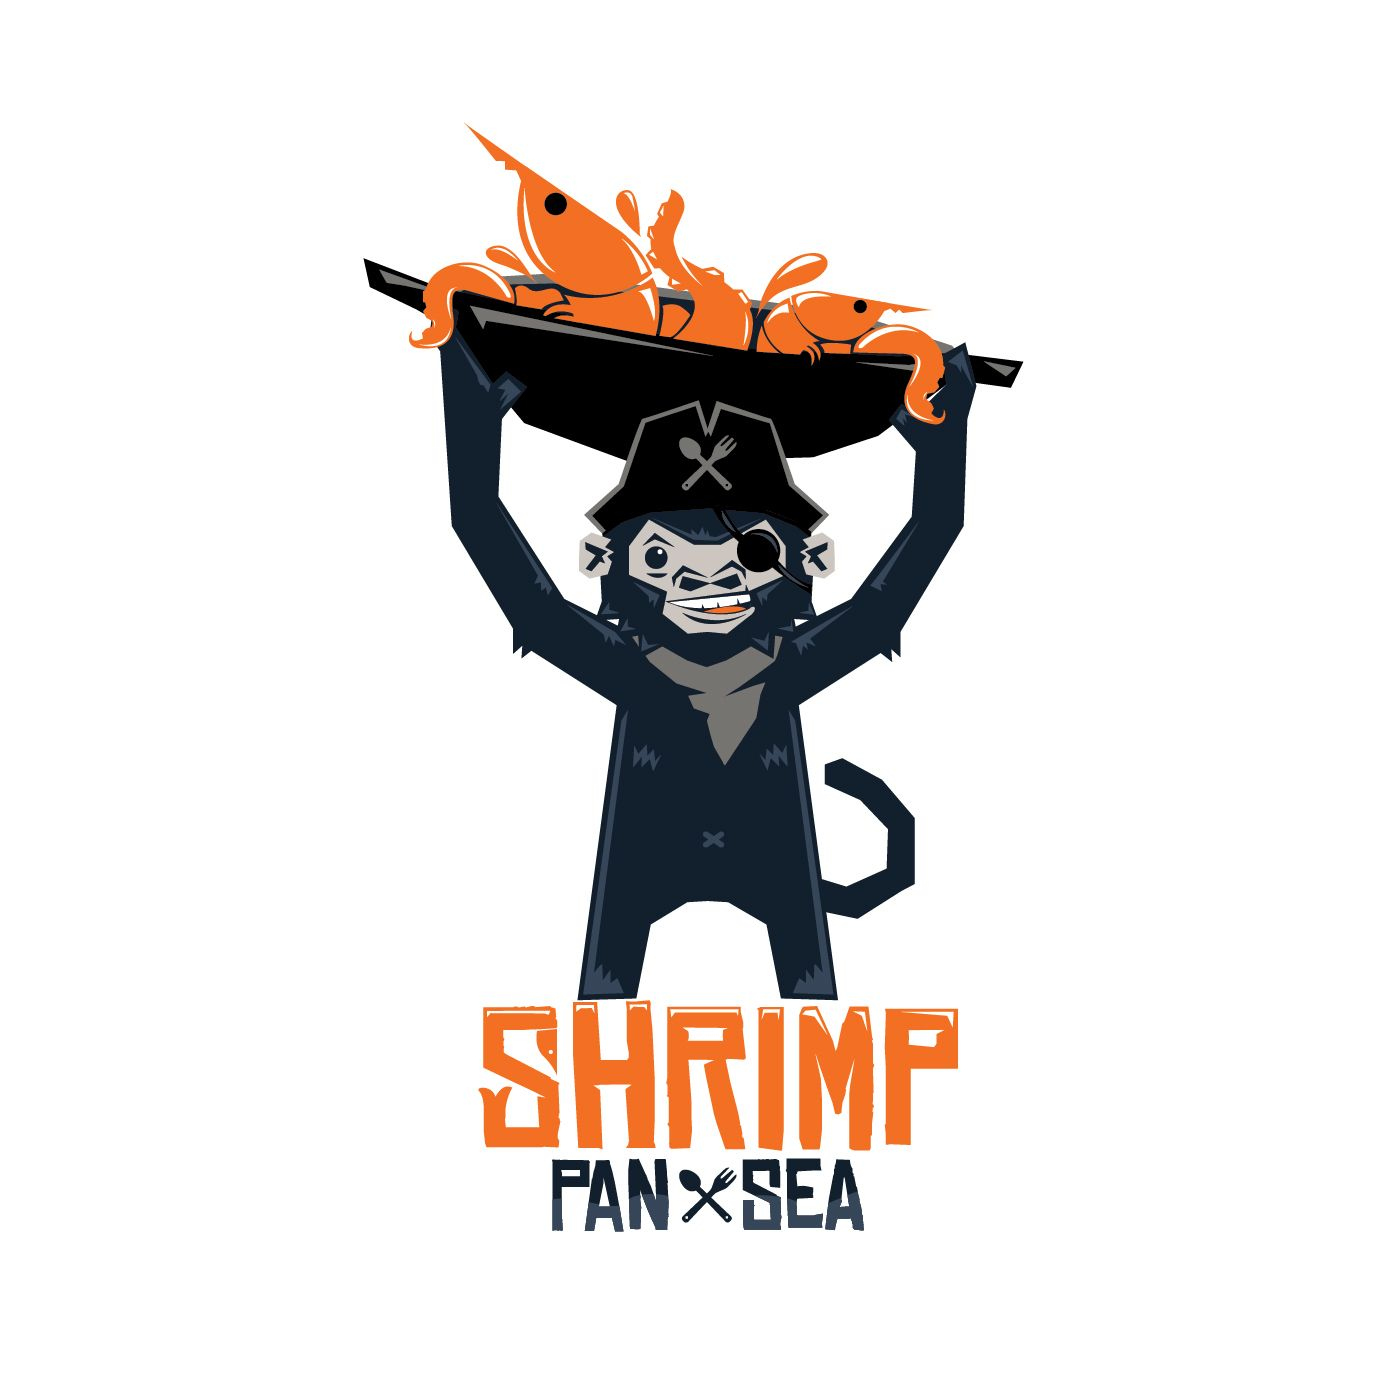 design for shrimp pan sea seafood restaurant logo design rh pinterest co uk shrimp logo psd shrimp mascot